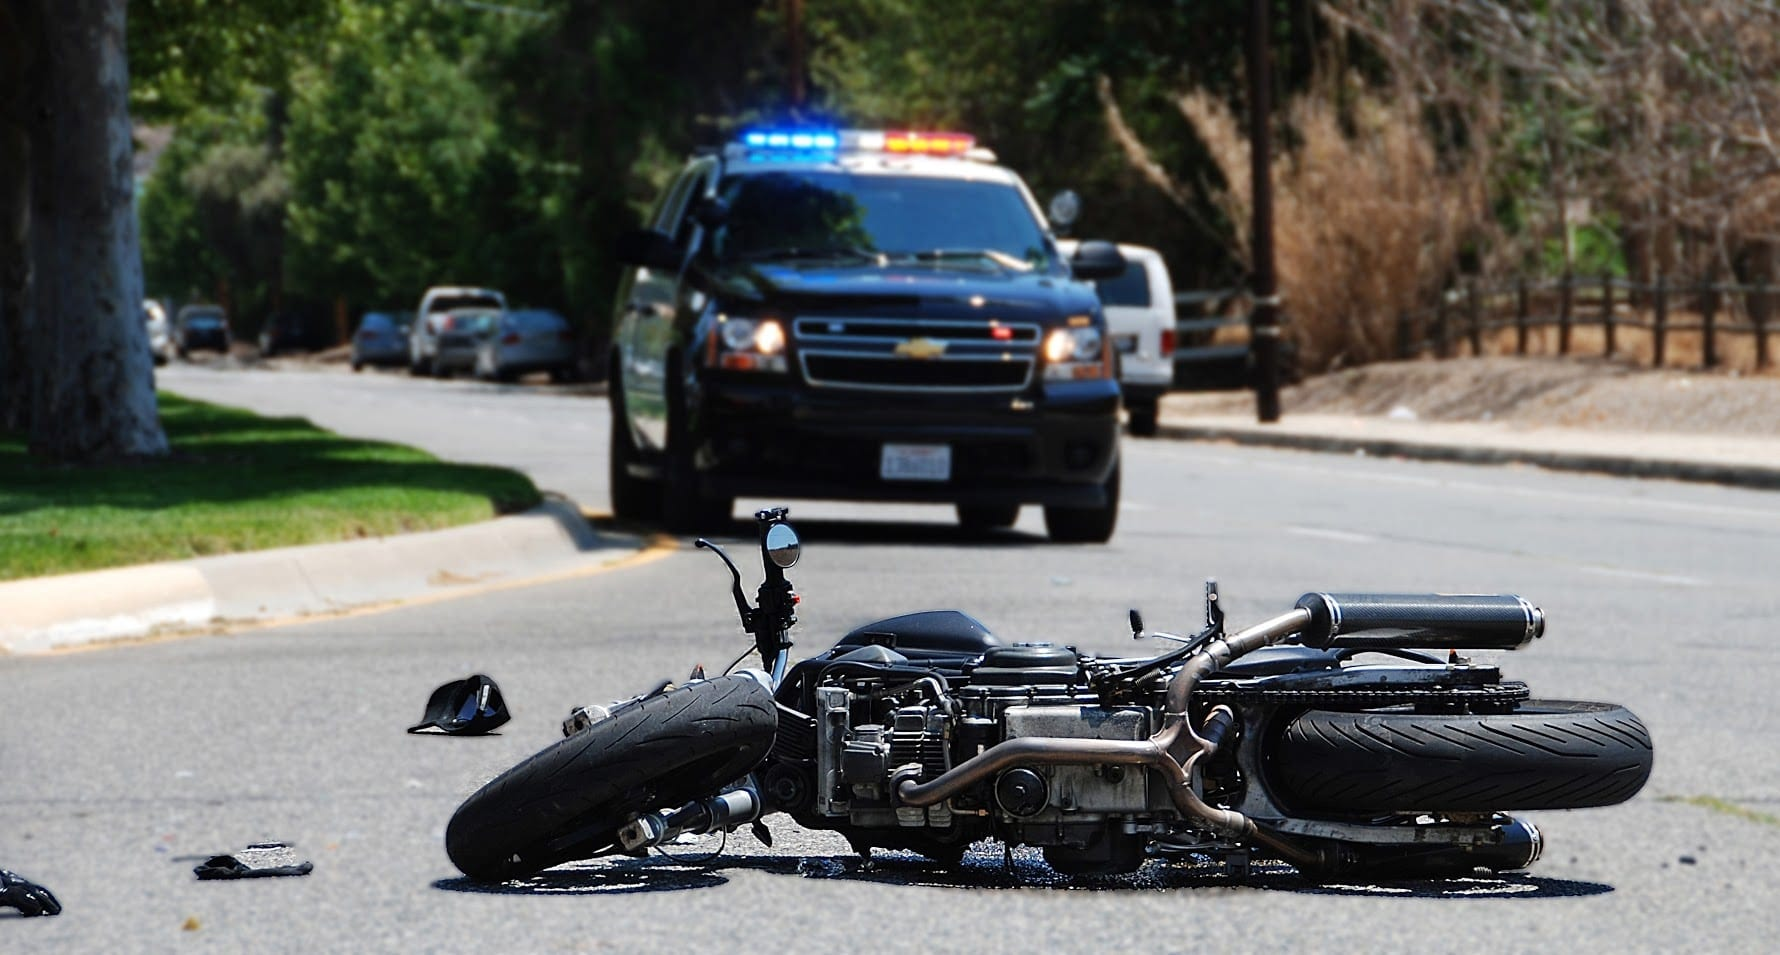 Motorcycle Accident On A City Street Stock Photo